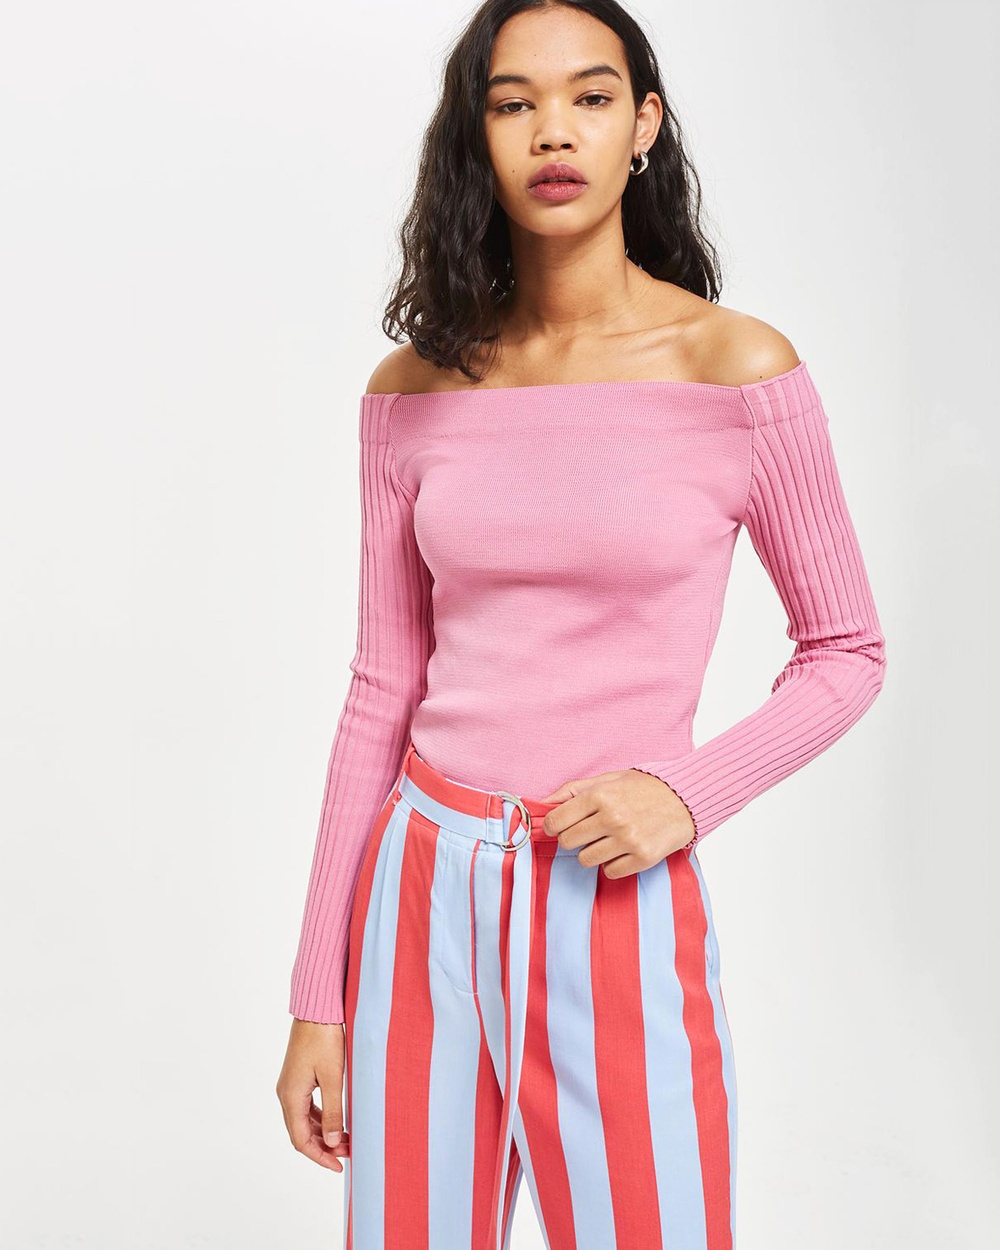 TOPSHOP Ribbed Sleeve Bardot Top Tops Pink Ribbed Sleeve Bardot Top